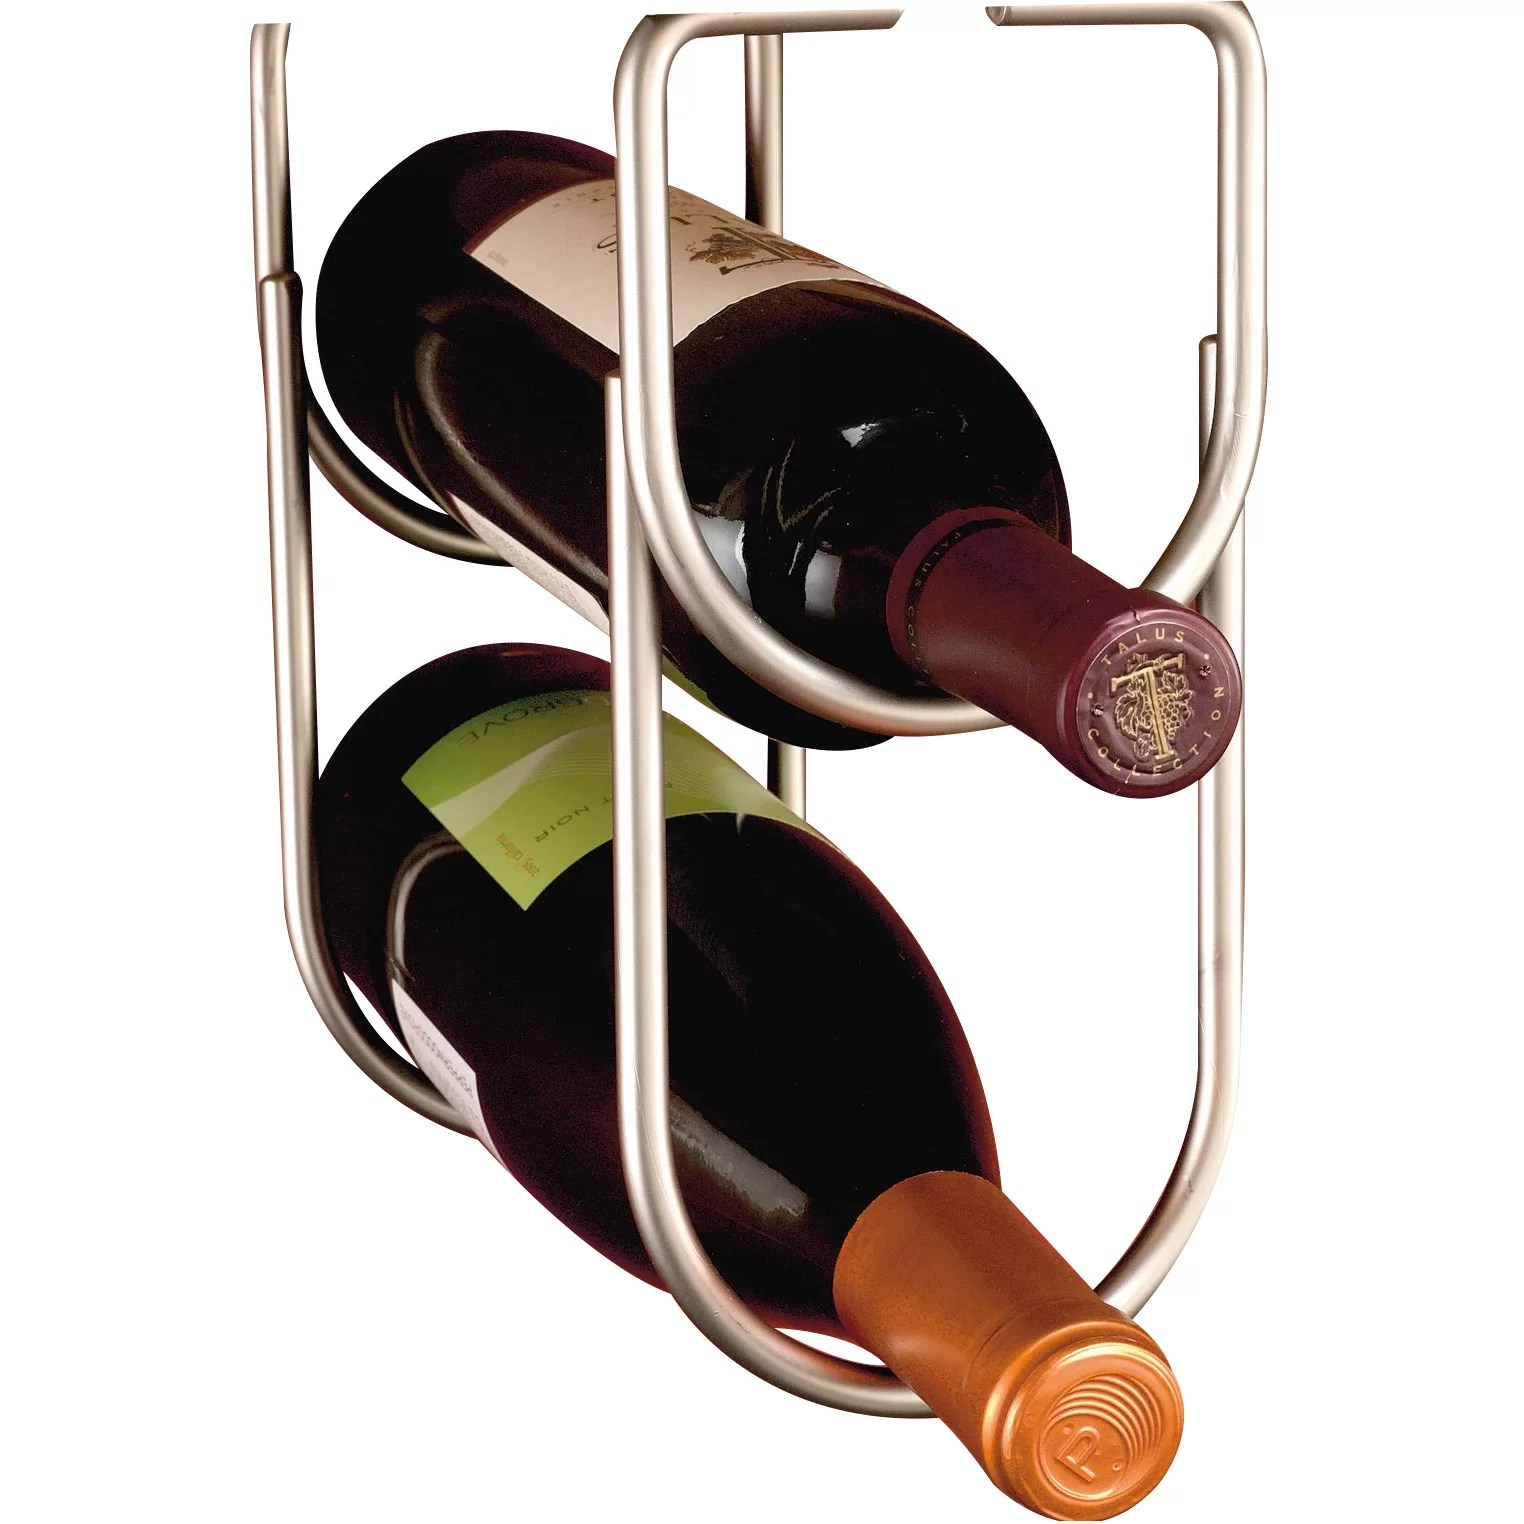 Hanging Bottle Rack Rev A Shelf 2 Bottle Hanging Wine Rack And Reviews Wayfair